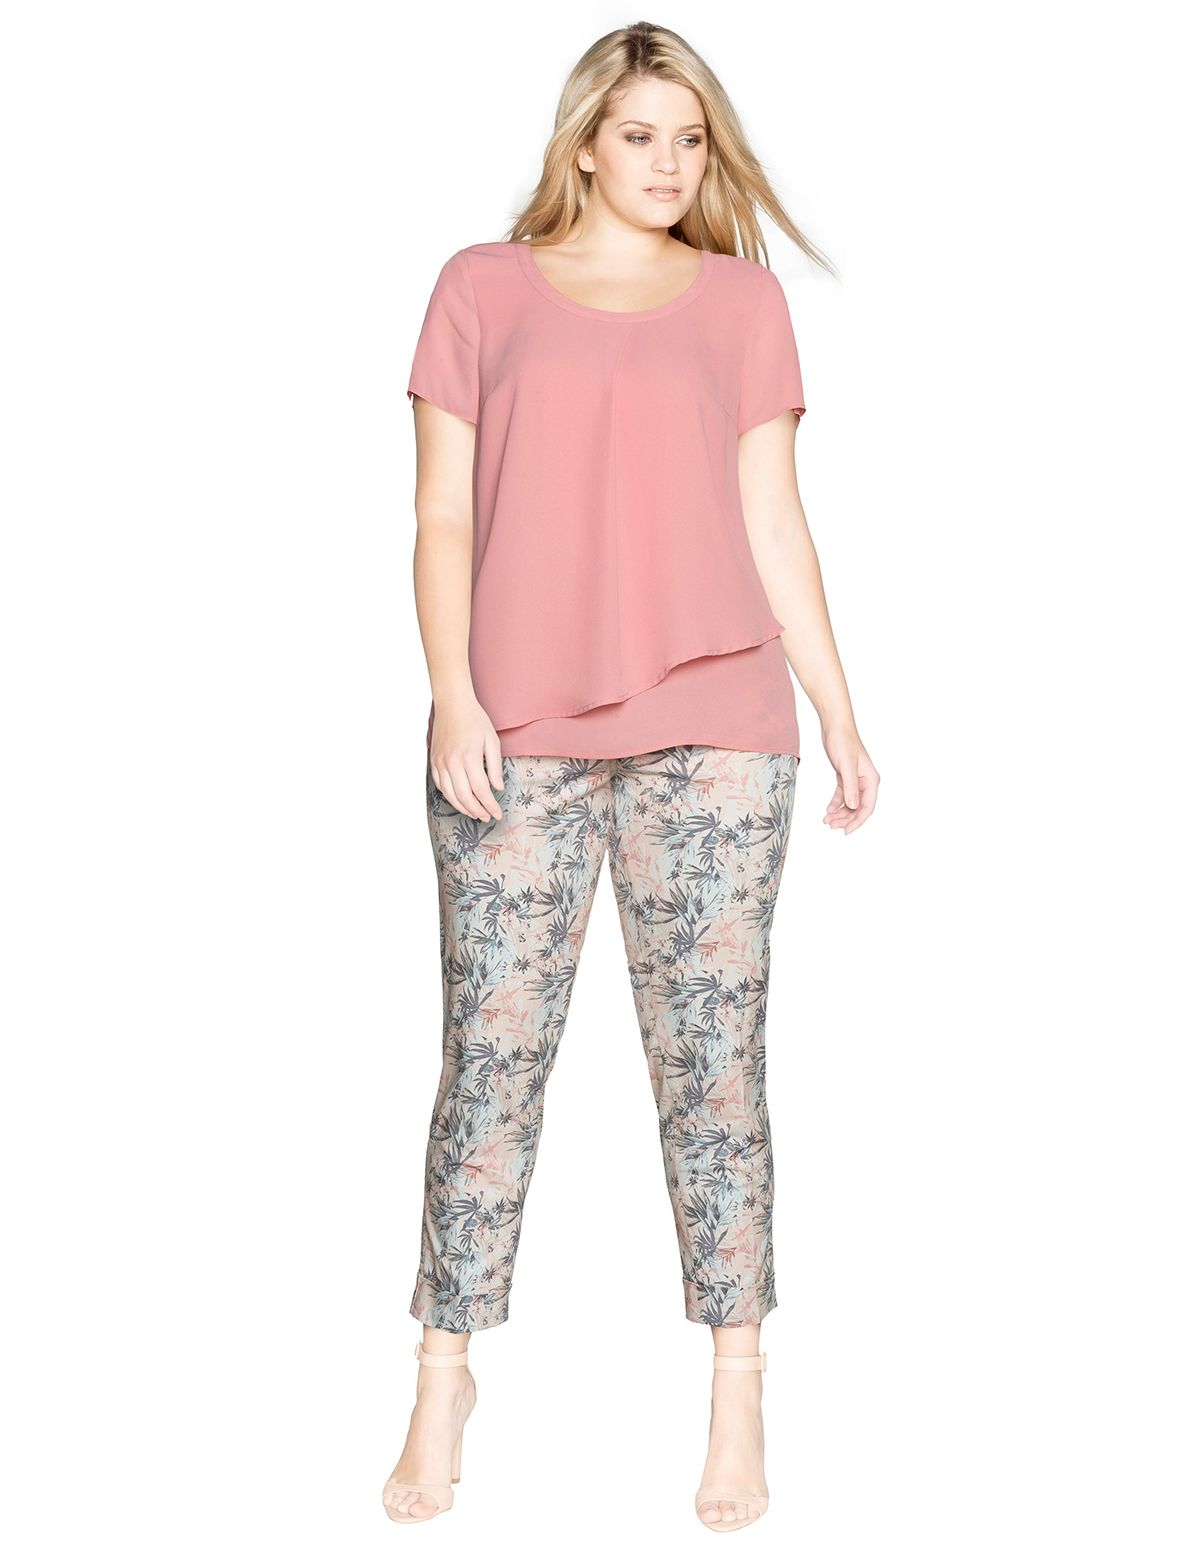 Raphaela by Brax Super slim fit Lena trousers in Pink / Versicolour ...